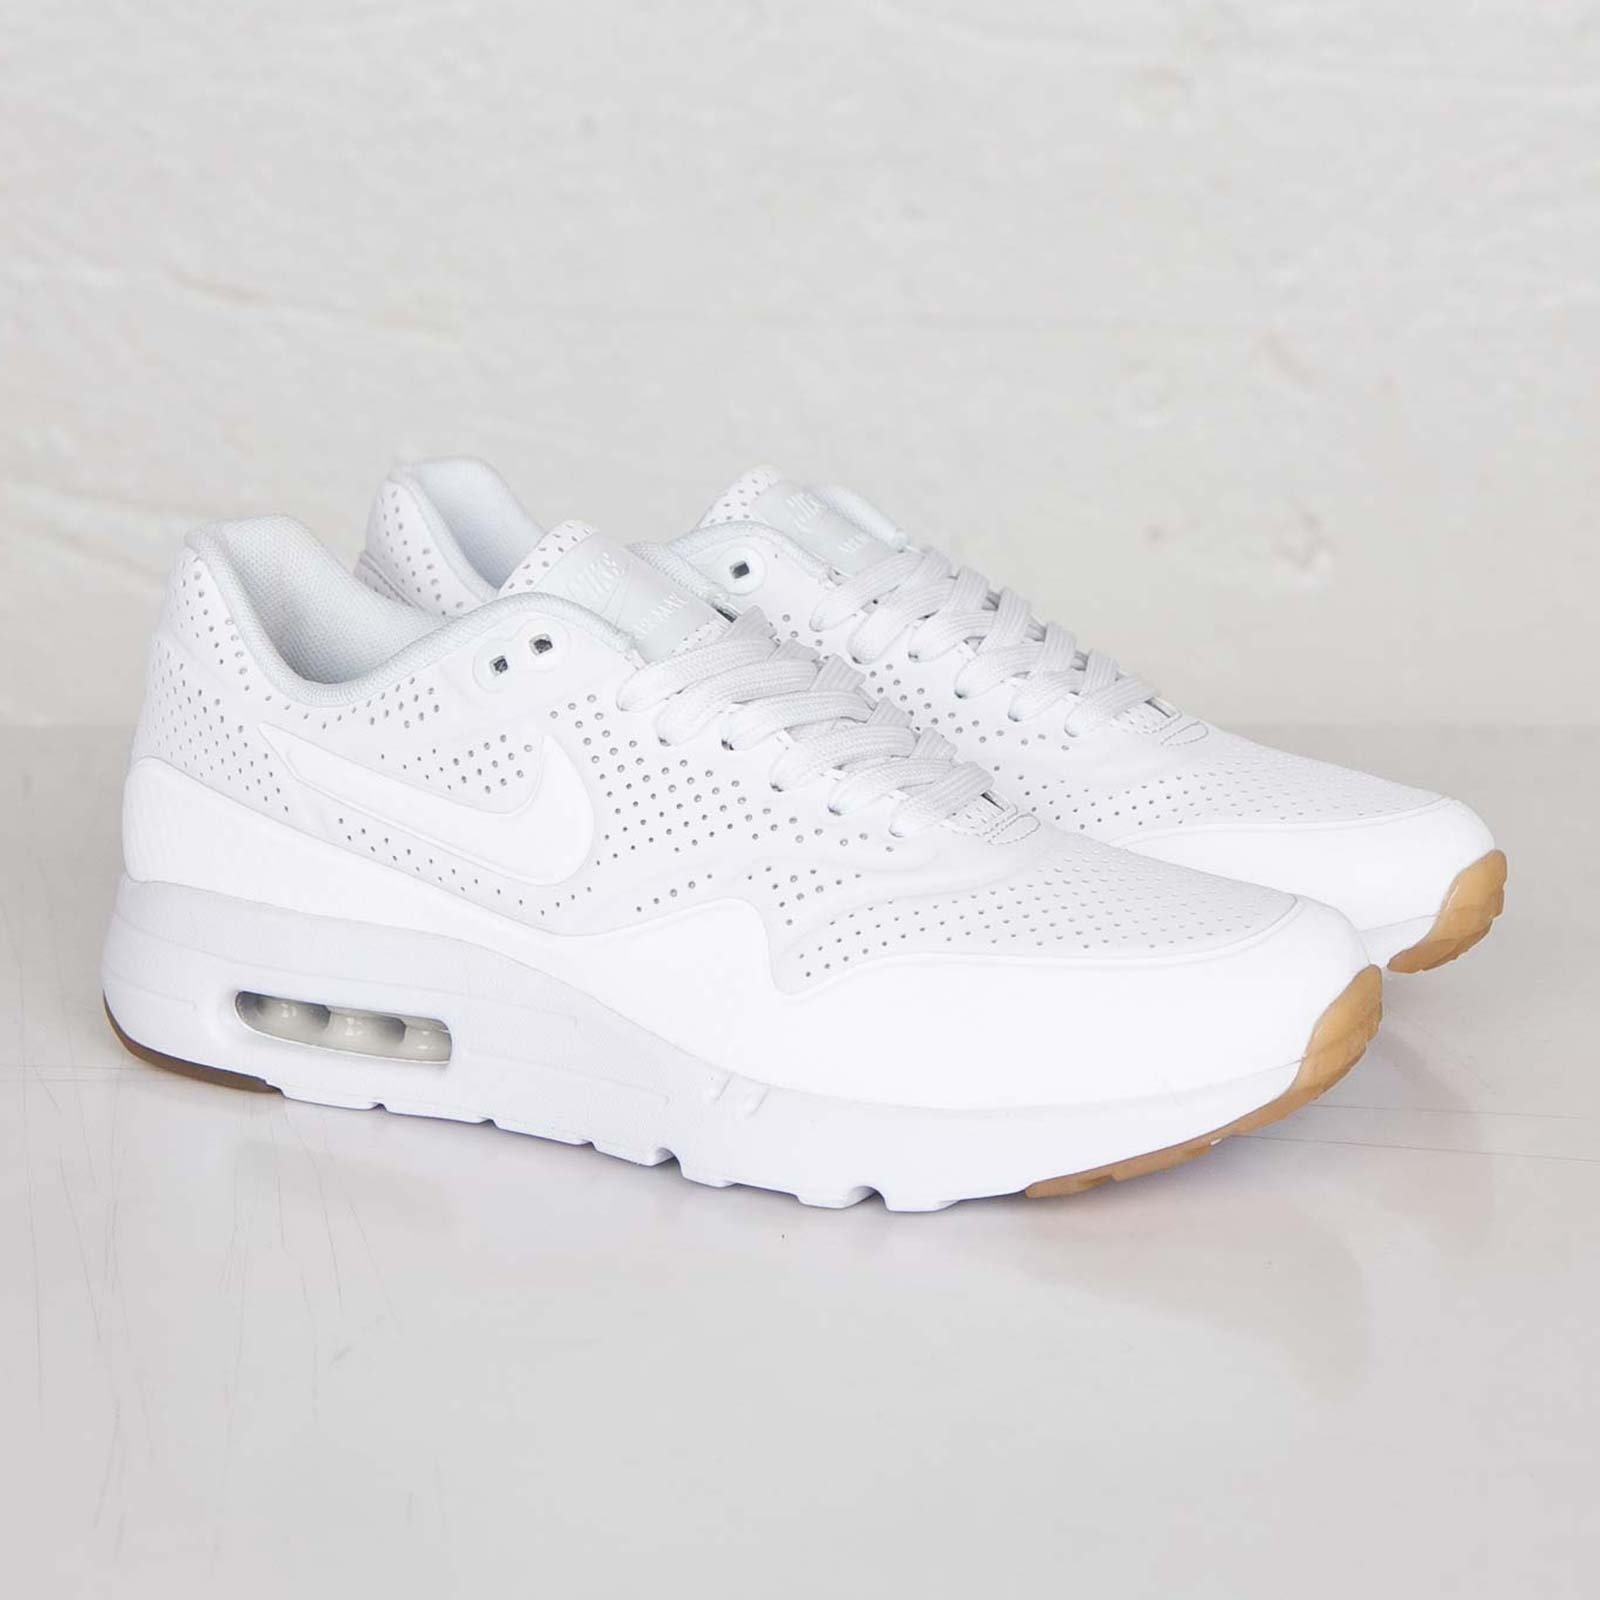 new product 9b6e1 3f905 Nike Air Max 1 Ultra Moire